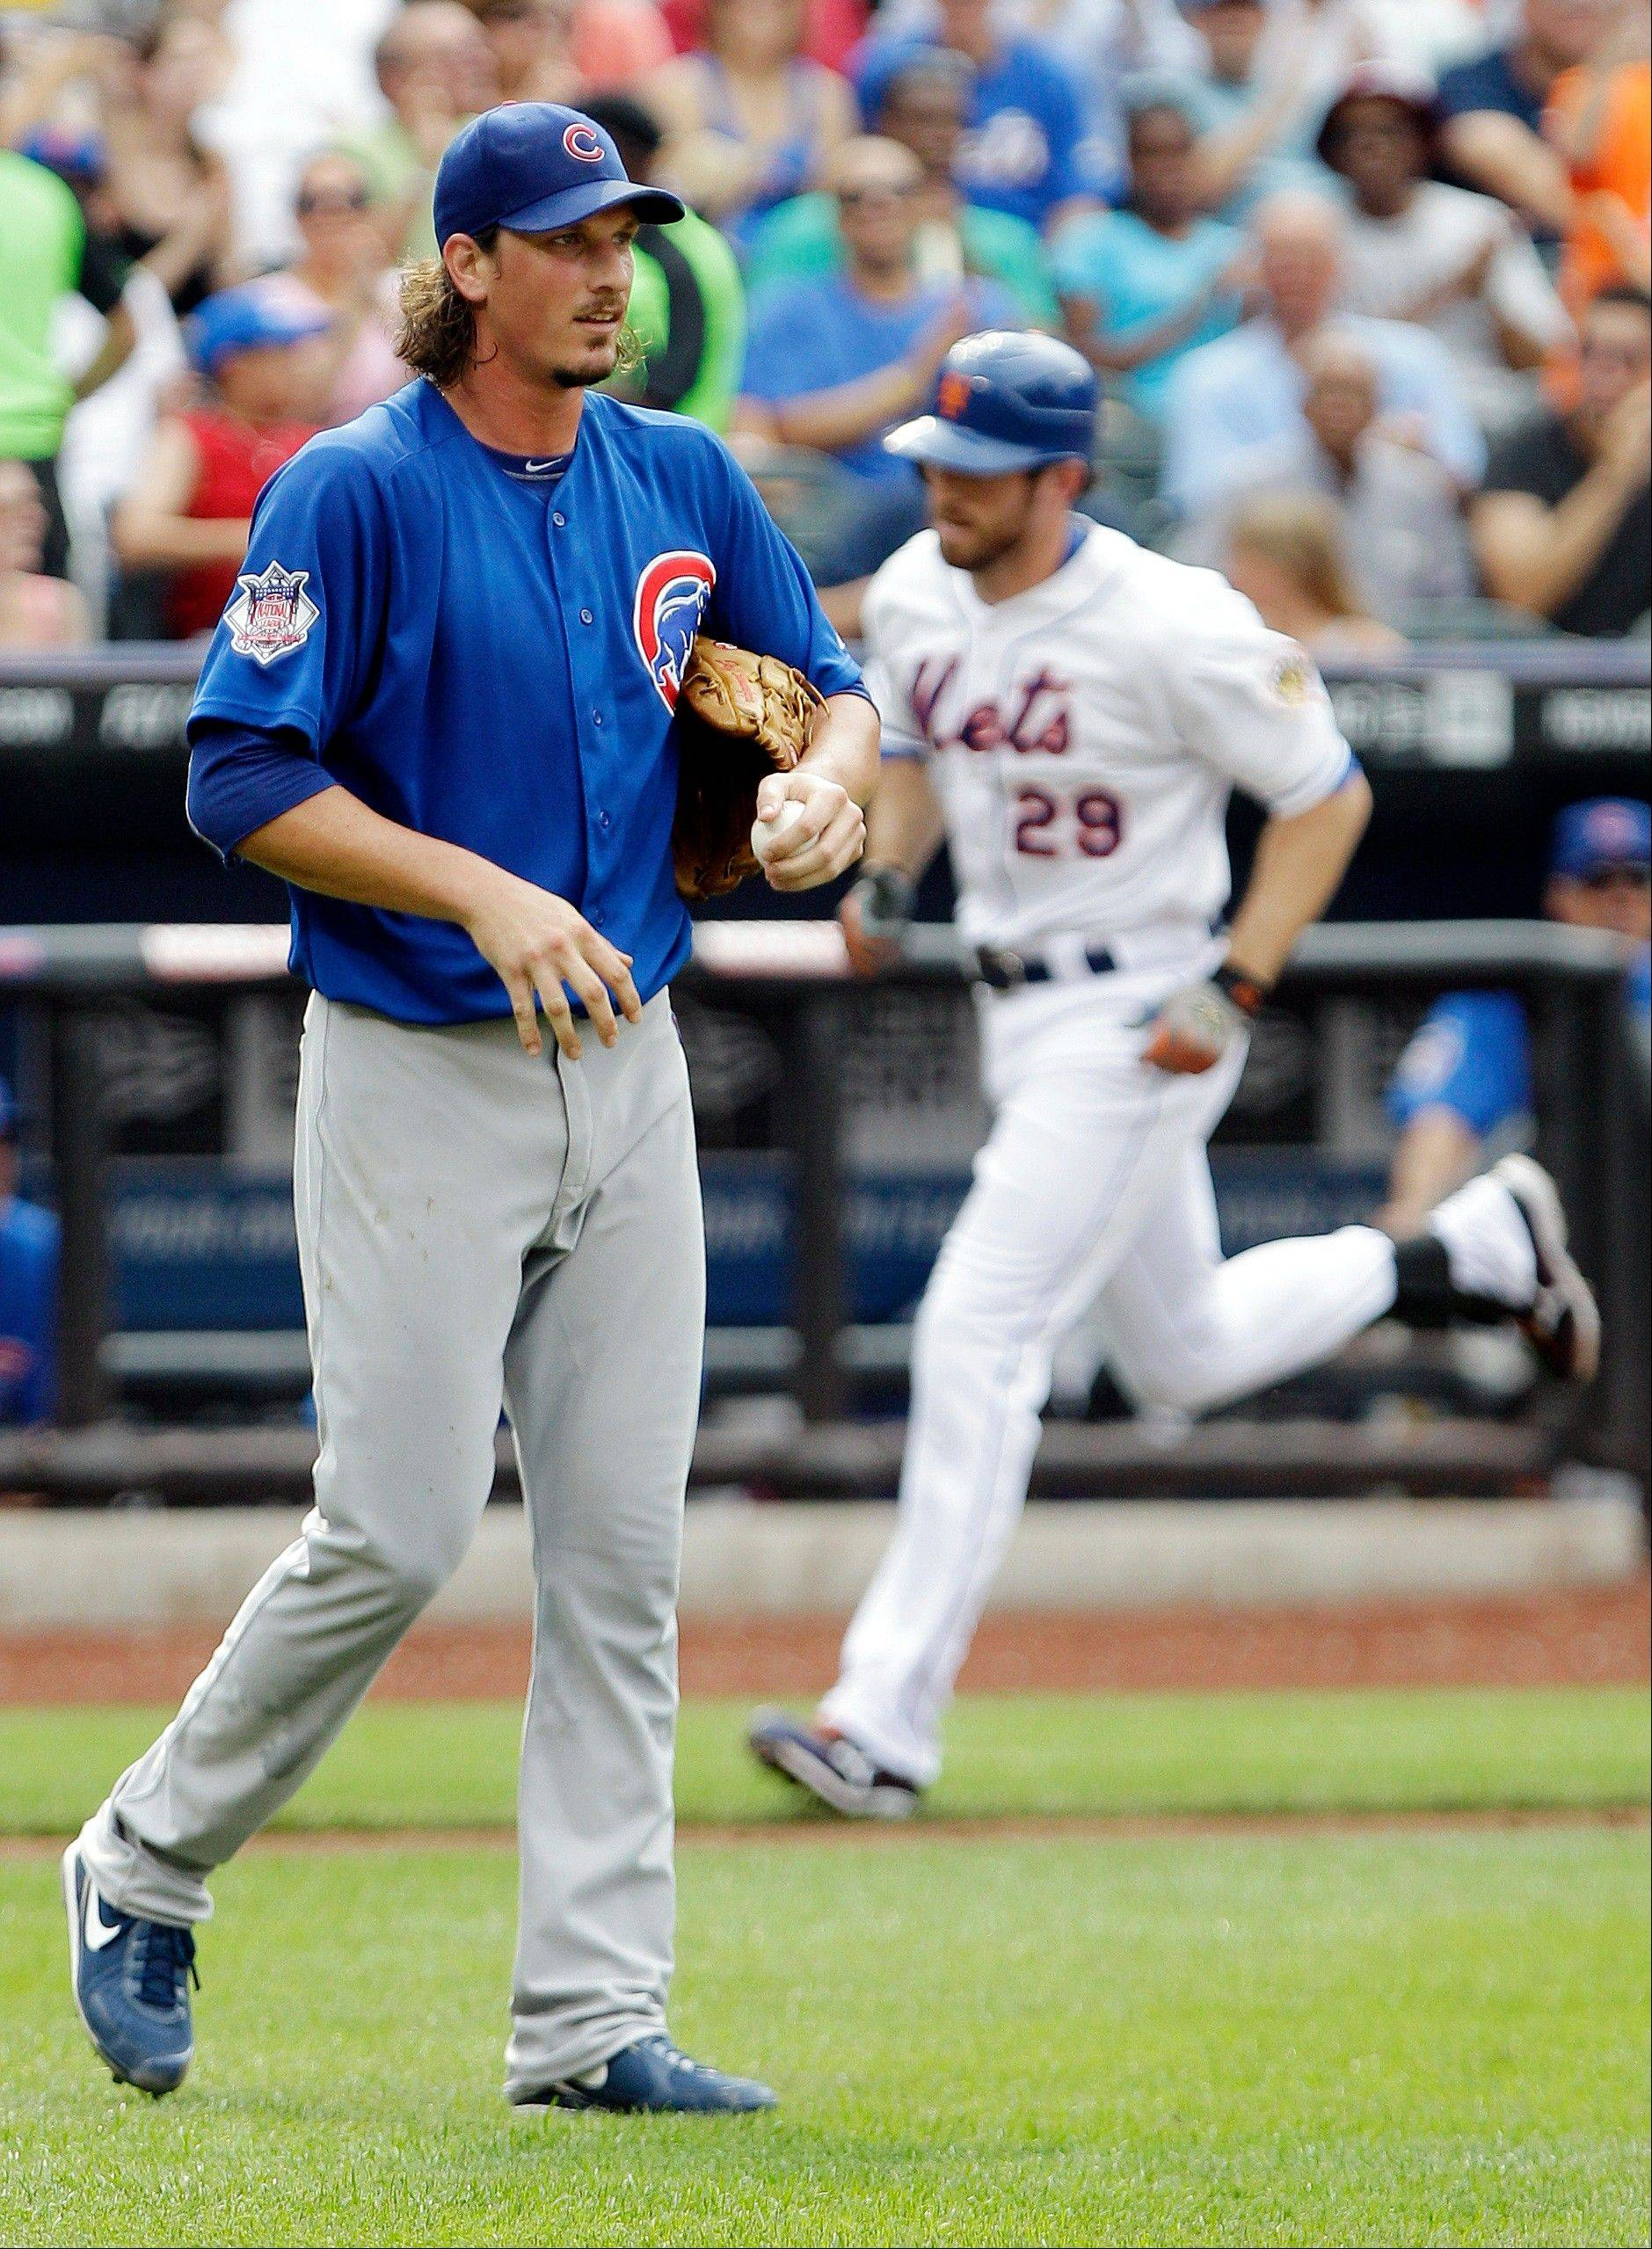 Cubs starting pitcher Jeff Samardzija reacts Saturday as New York Mets first baseman Ike Davis runs the bases Saturday after hitting a 2-run home run during the third inning in New York.